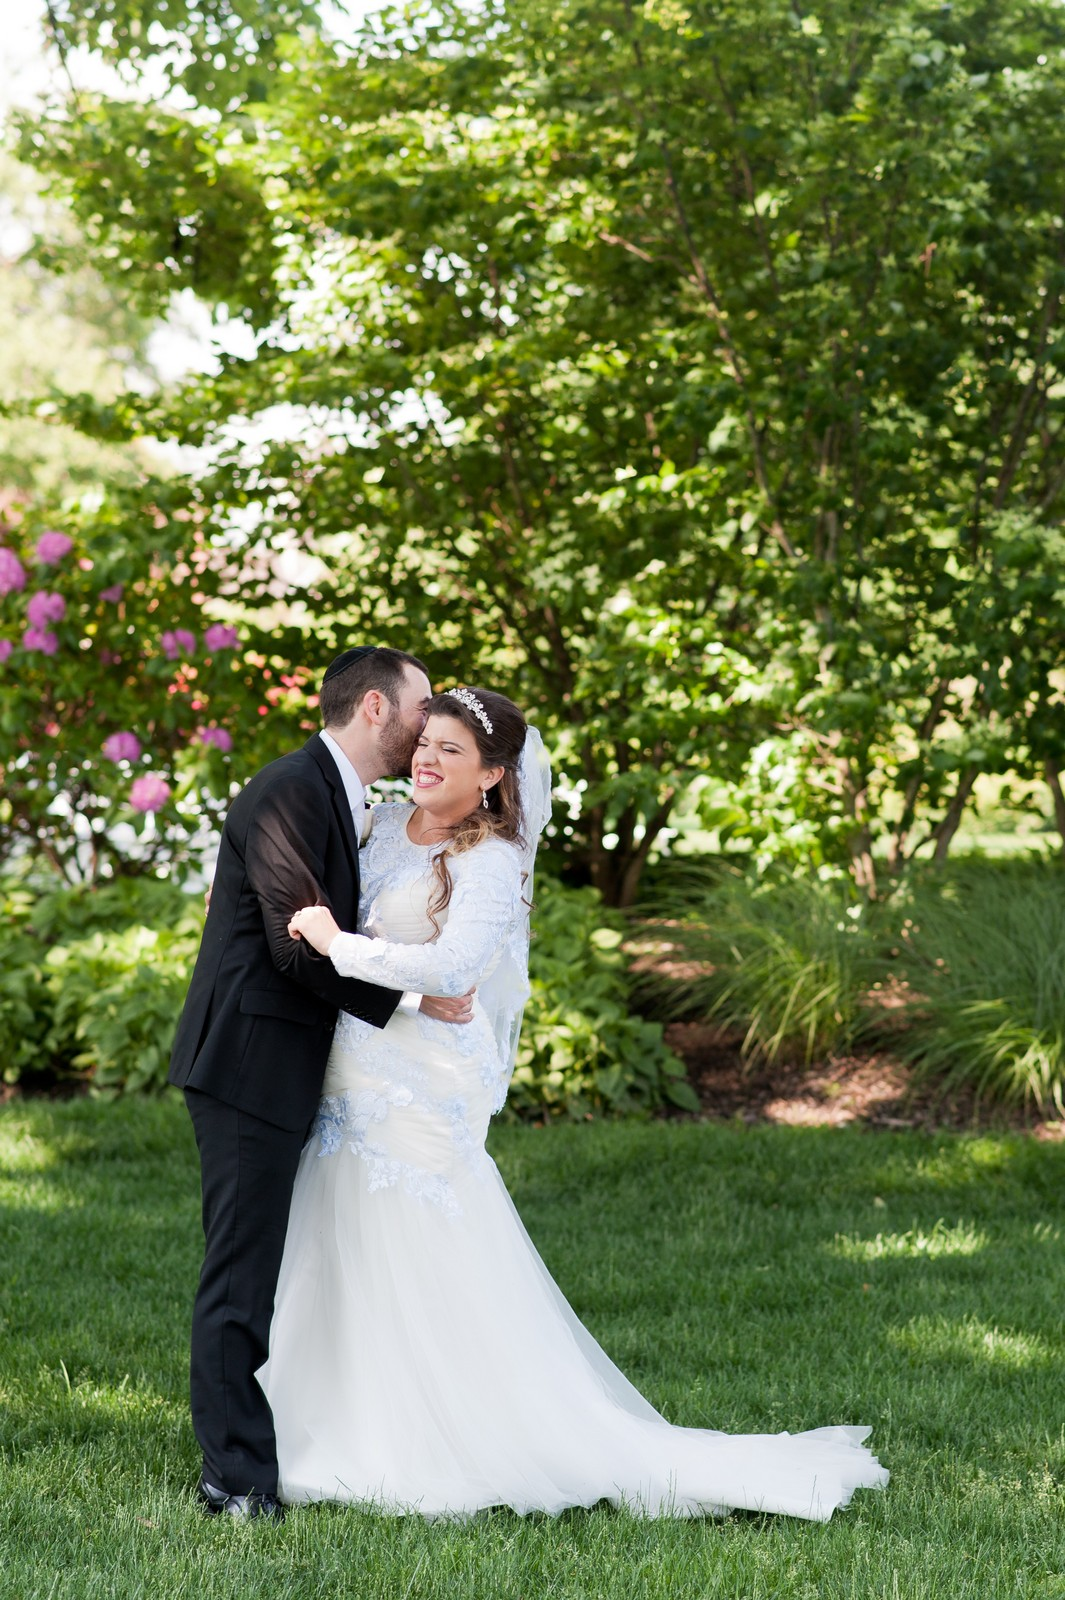 Orthodox Jewish Wedding, Dyker Beach Park and Golf Course, Brooklyn, New York, Photo by Chaim Schvarcz, Bride and Groom Portraits, Newlyweds